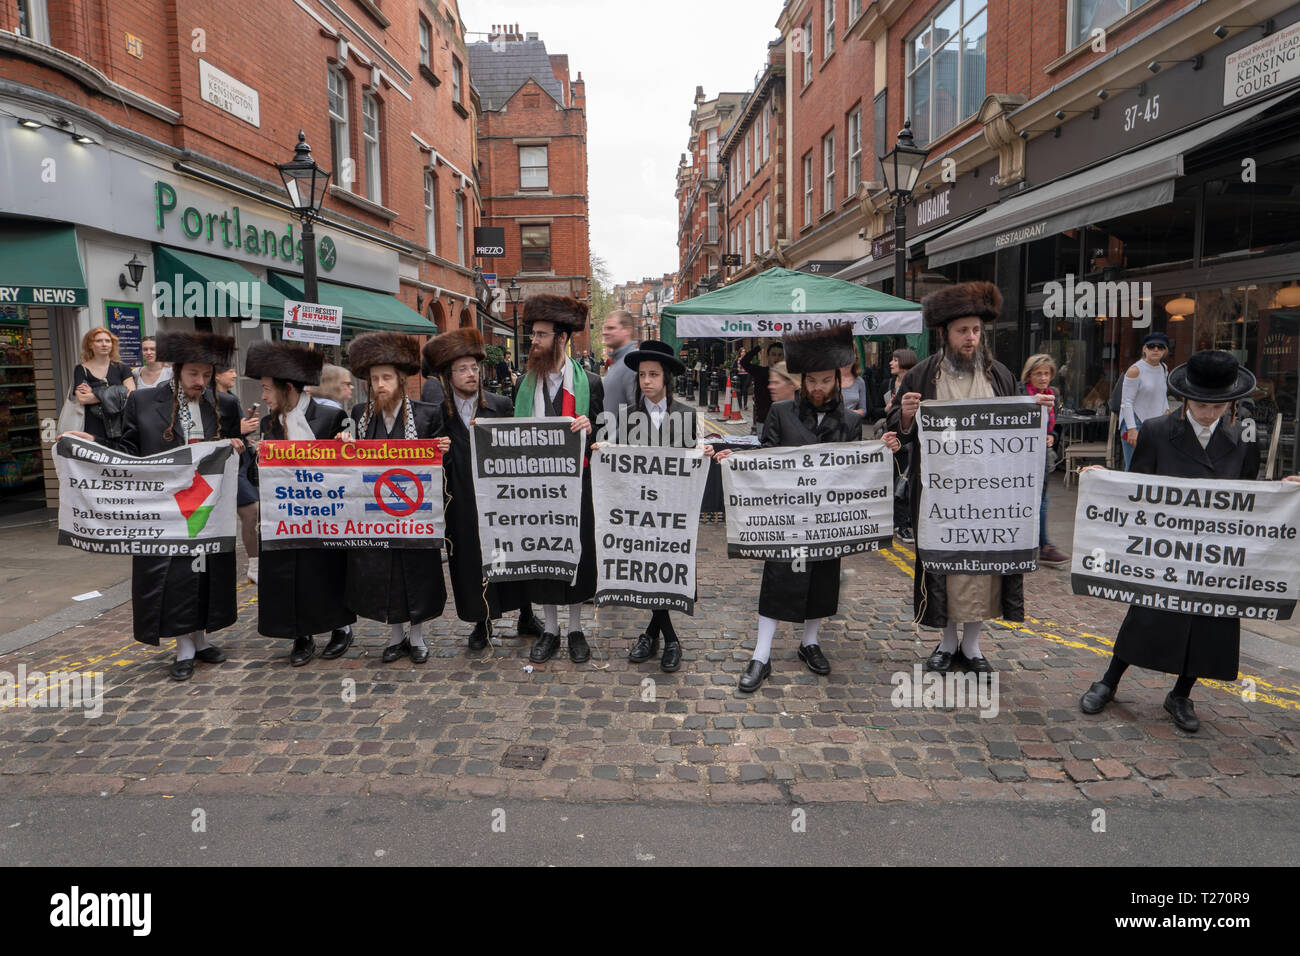 London, UK. 30th March 2019. Orthodox Jewish protesters at a pro-Palestine demonstration (Exist, Resist Return) outside the Israel embassy in London. Photo date: Saturday, March 30, 2019. Photo: Roger Garfield/Alamy Live News Credit: Roger Garfield/Alamy Live News - Stock Image